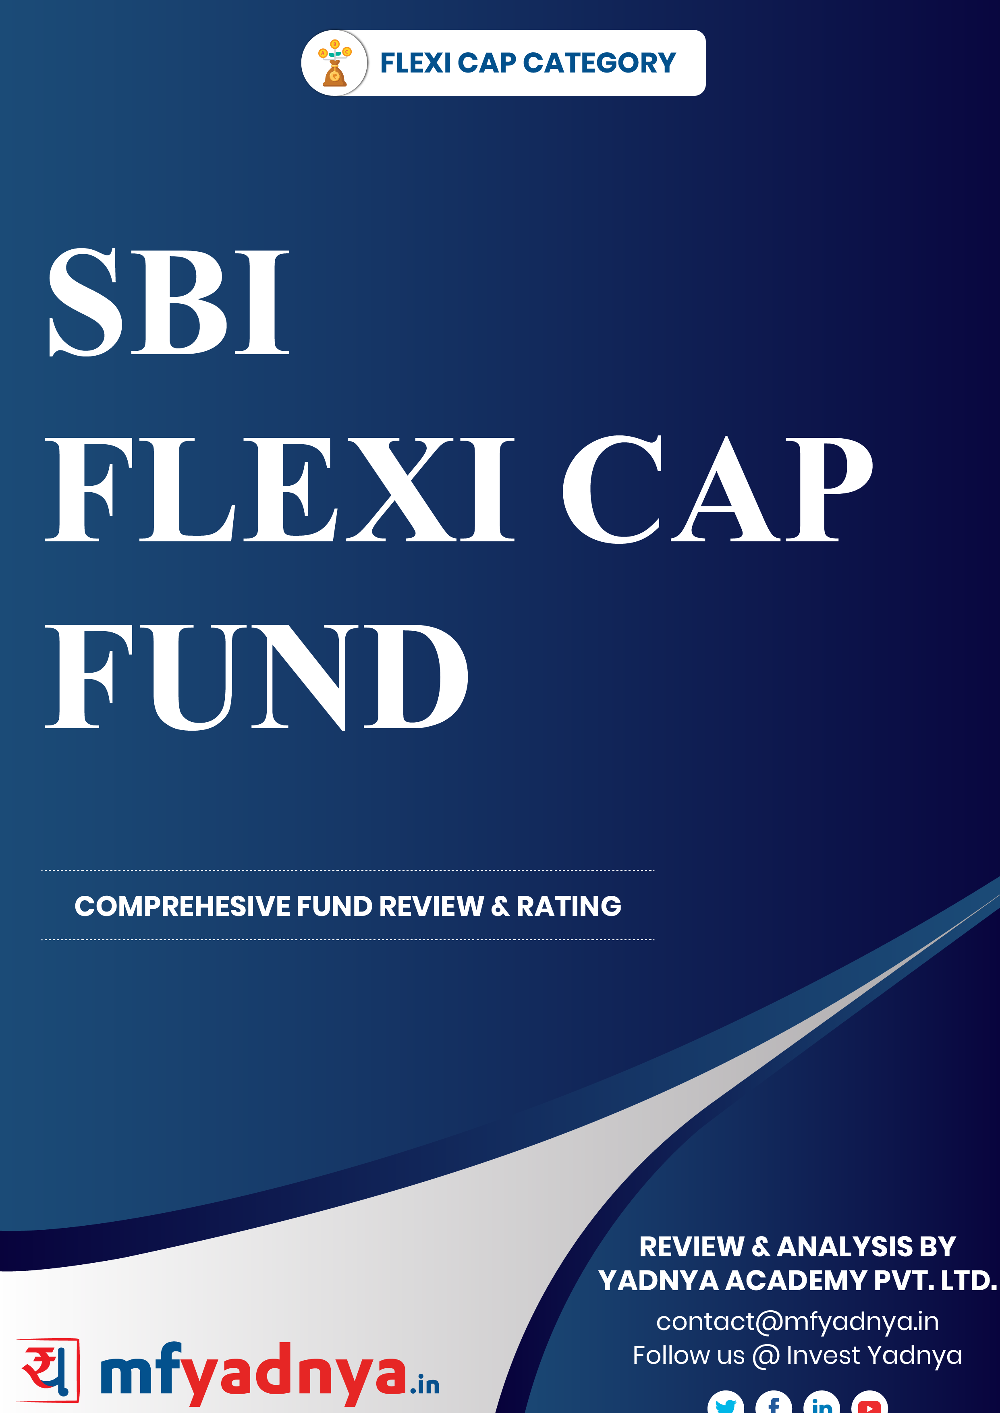 This e-book offers a comprehensive mutual fund review of SBI Magnum Flexicap Fund. It reviews the fund's return, ratio, allocation etc. ✔ Detailed Mutual Fund Analysis ✔ Latest Research Reports